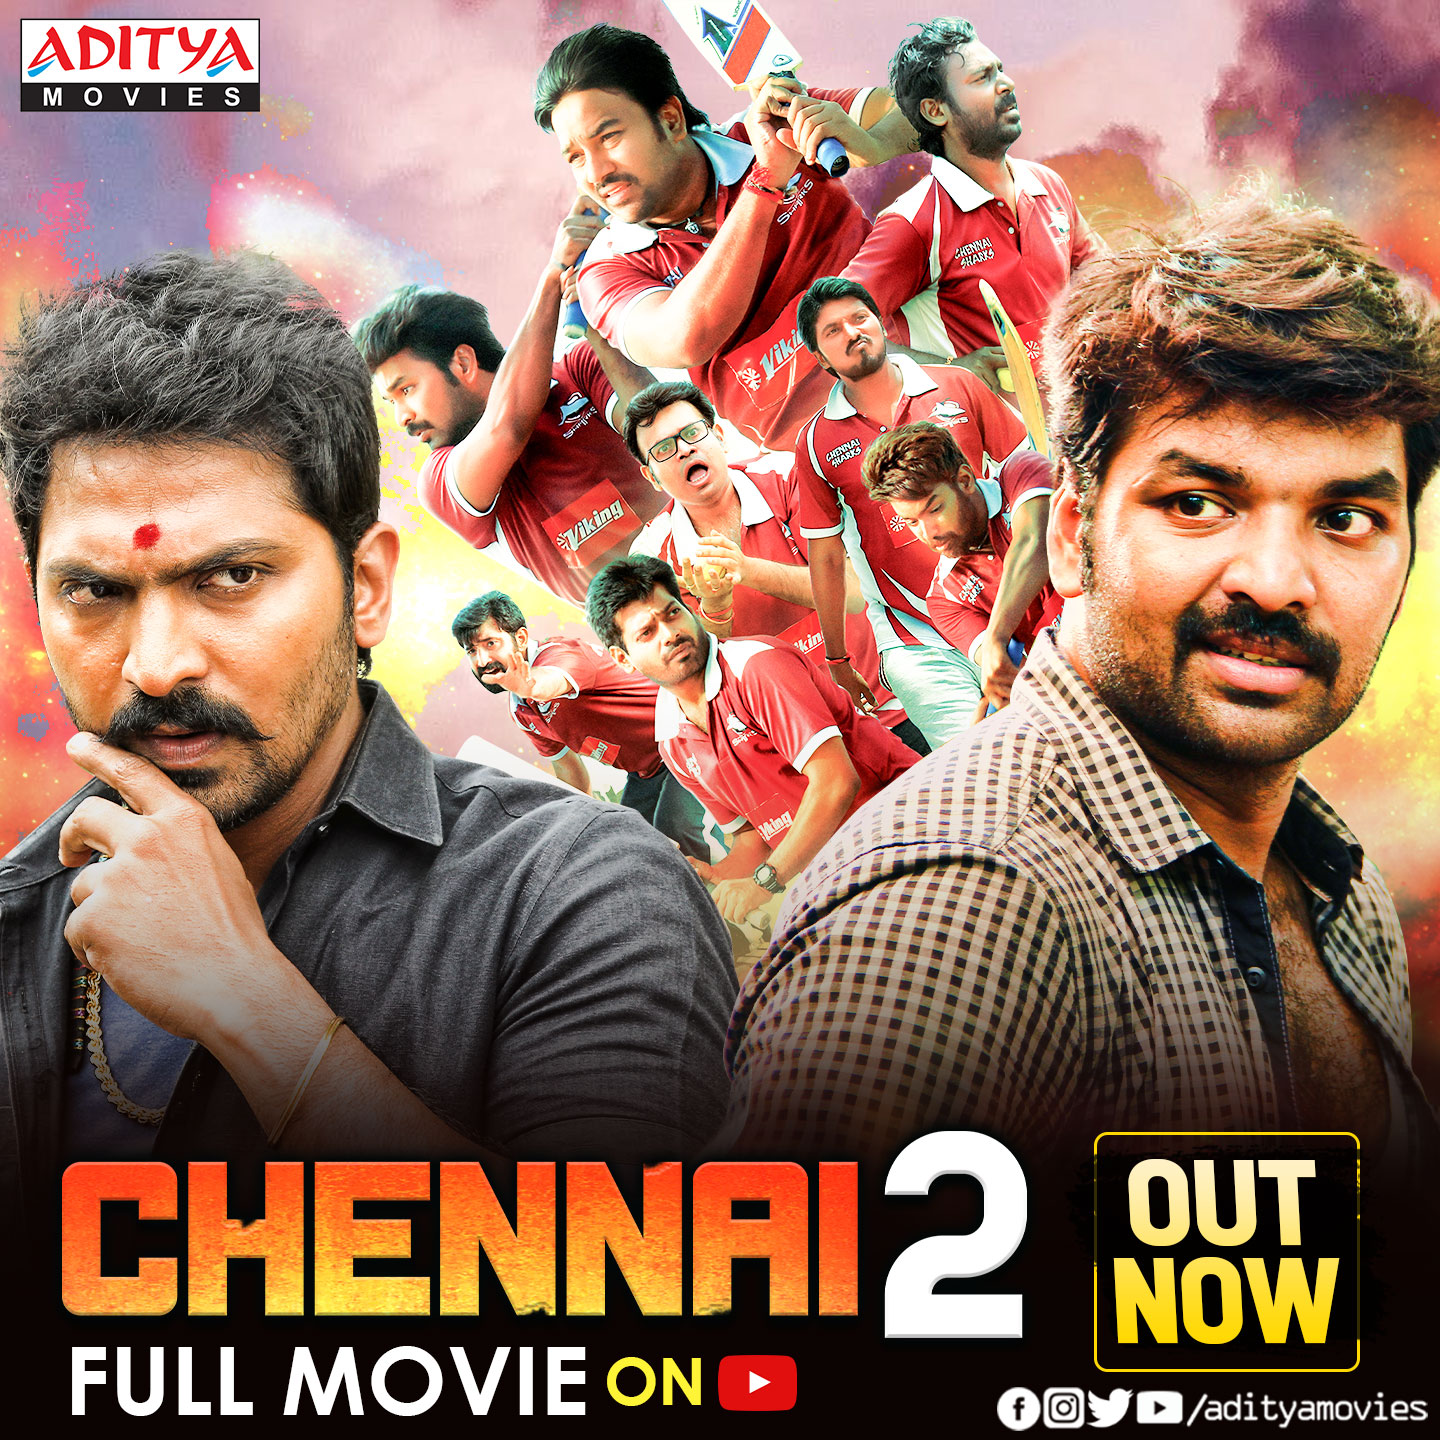 Chennai 2 (Chennai 600028 II) 2021 Hindi Dubbed 1080p HDRip 1.9GB x264 AAC